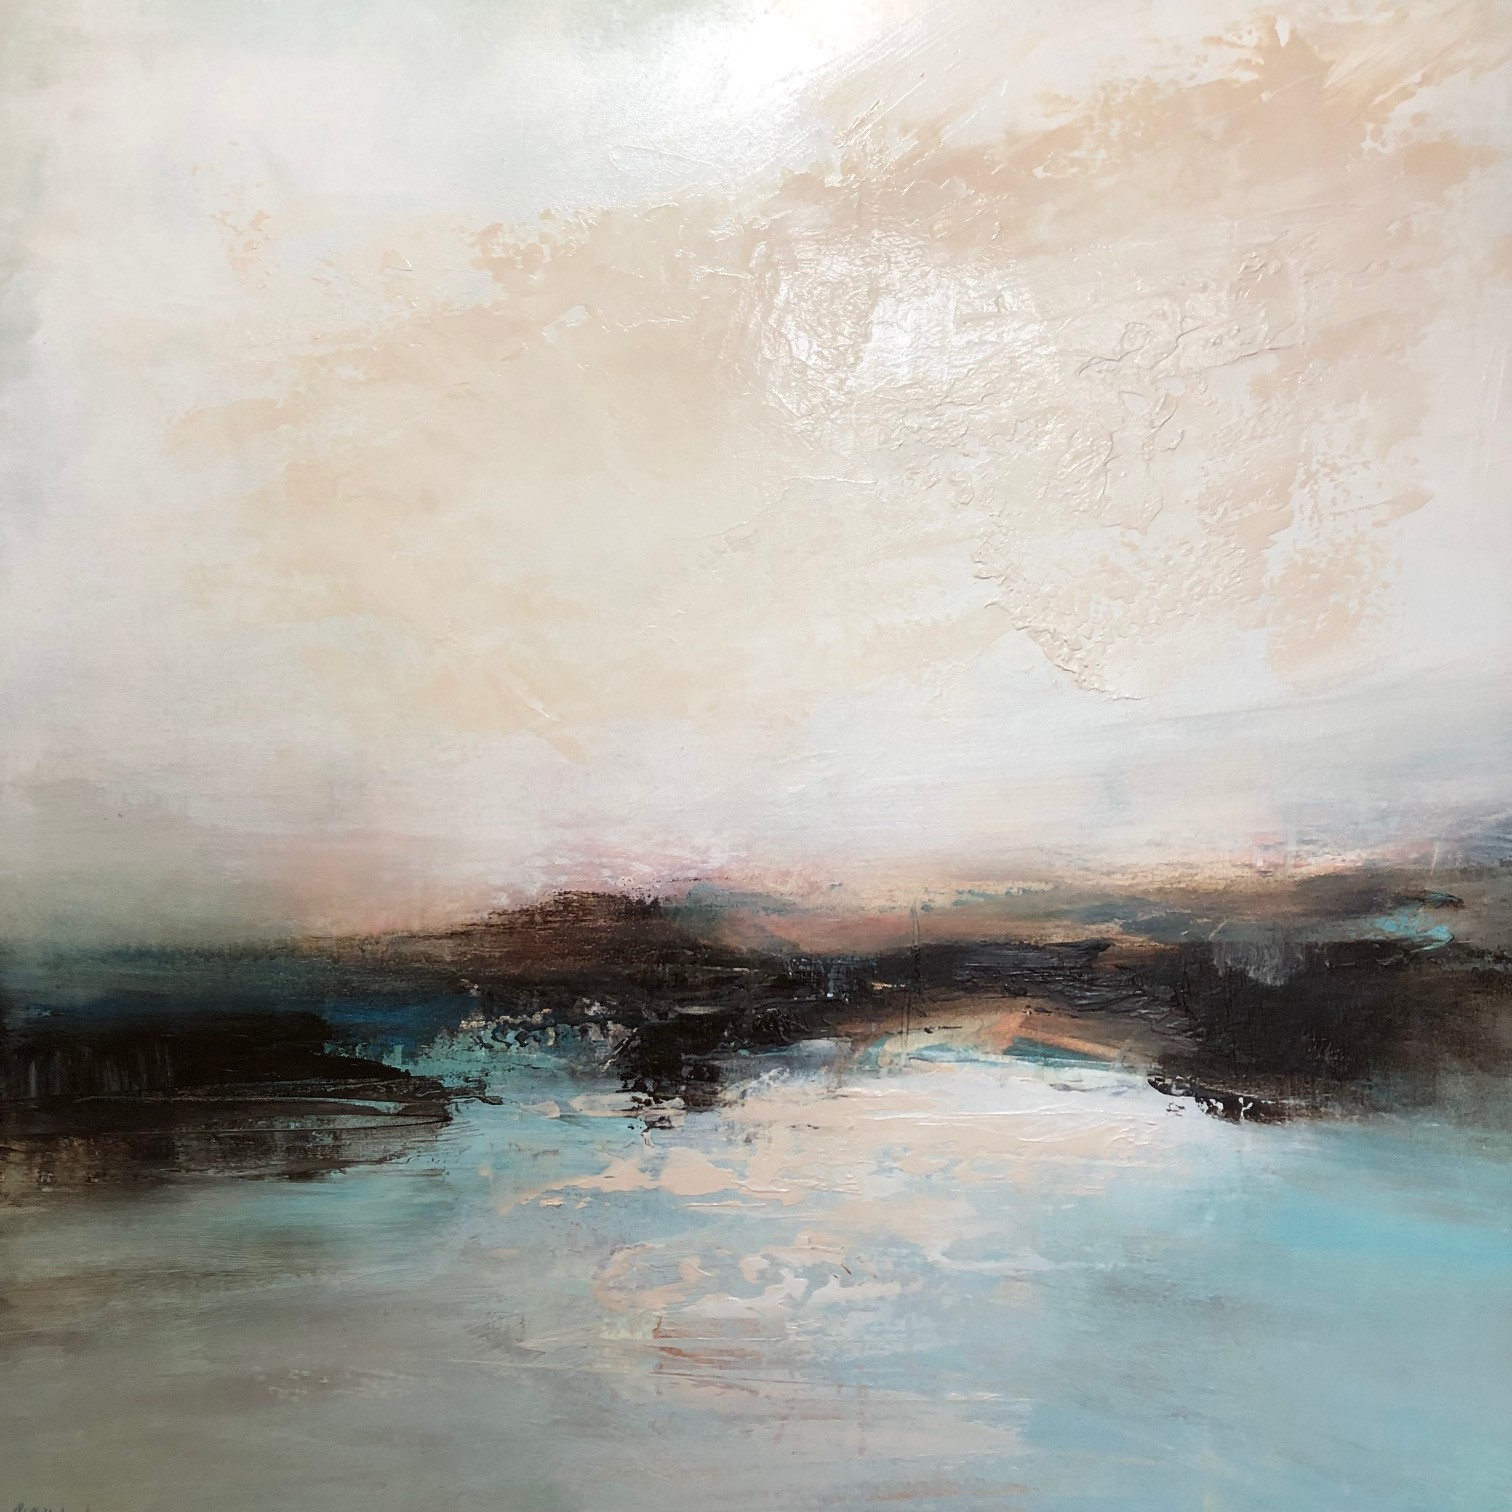 "<span class=""link fancybox-details-link""><a href=""/artists/41-erin-ward/works/6592-erin-ward-summer-glow-2019/"">View Detail Page</a></span><div class=""artist""><strong>Erin Ward</strong></div> <div class=""title""><em>Summer Glow</em>, 2019</div> <div class=""medium"">Acrylic on canvas</div> <div class=""dimensions"">h. 76 cm x w. 76 cm </div><div class=""price"">£1,300.00</div><div class=""copyright_line"">Ownart: £130 x 10 Months, 0% APR</div>"